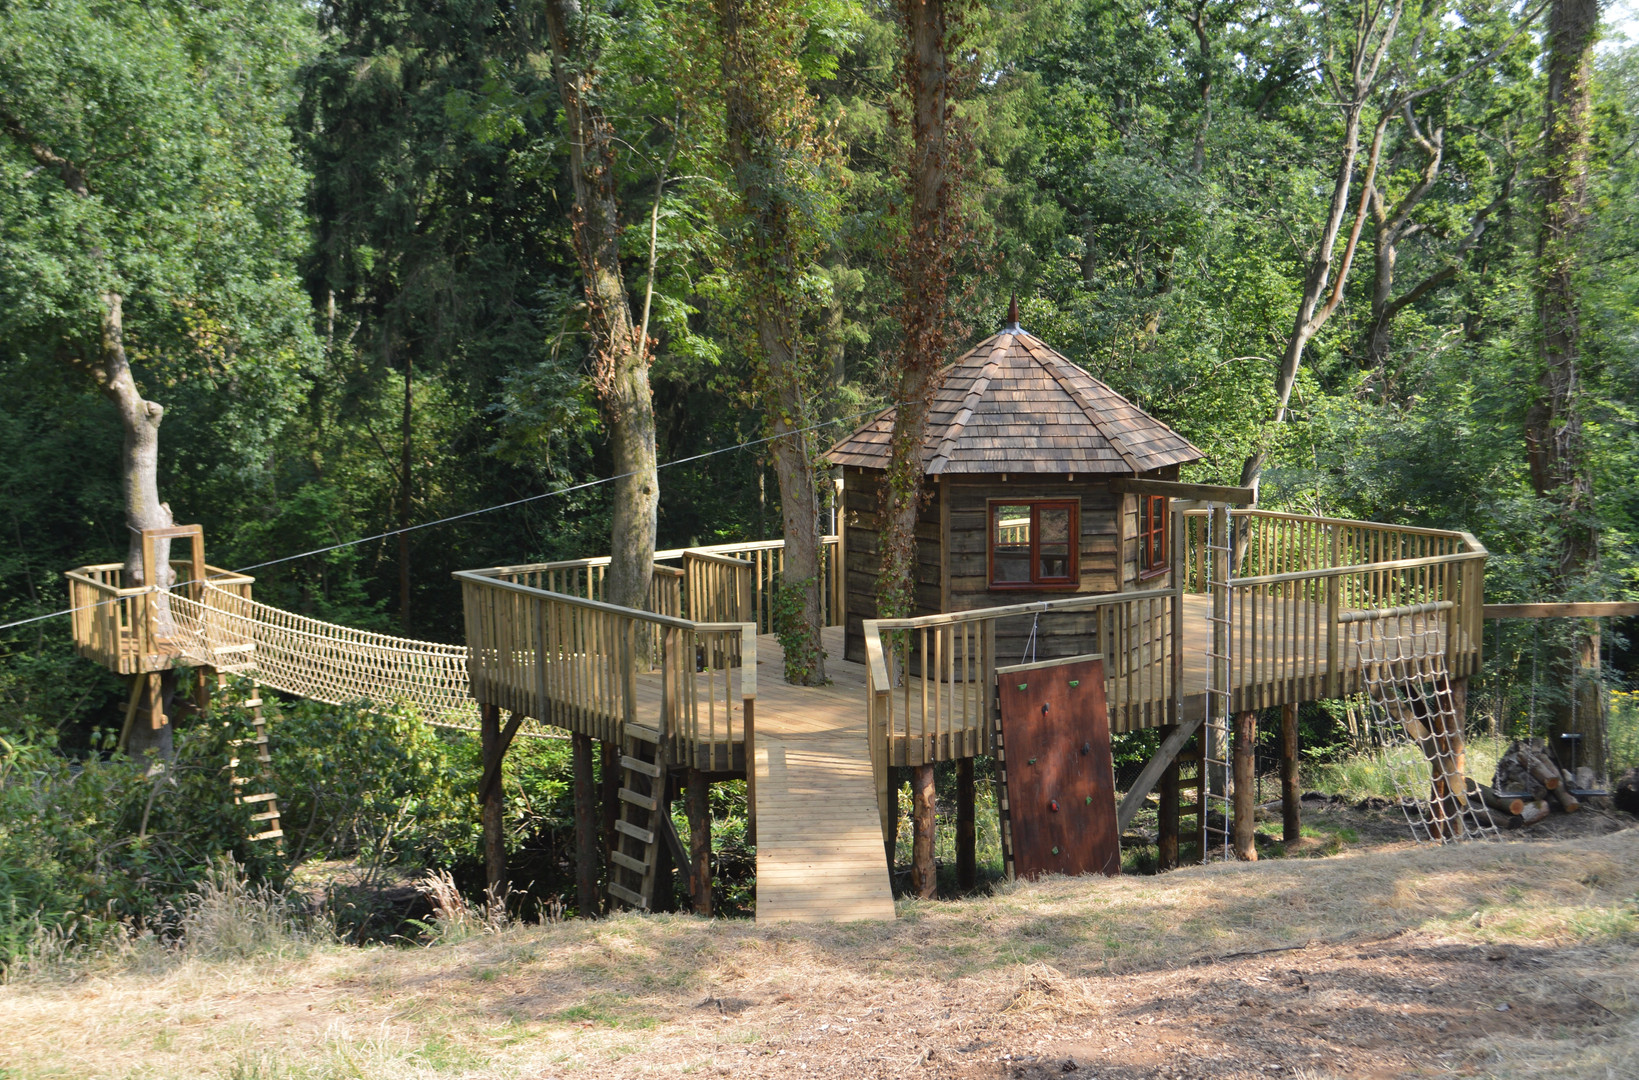 Treehouse in the wood